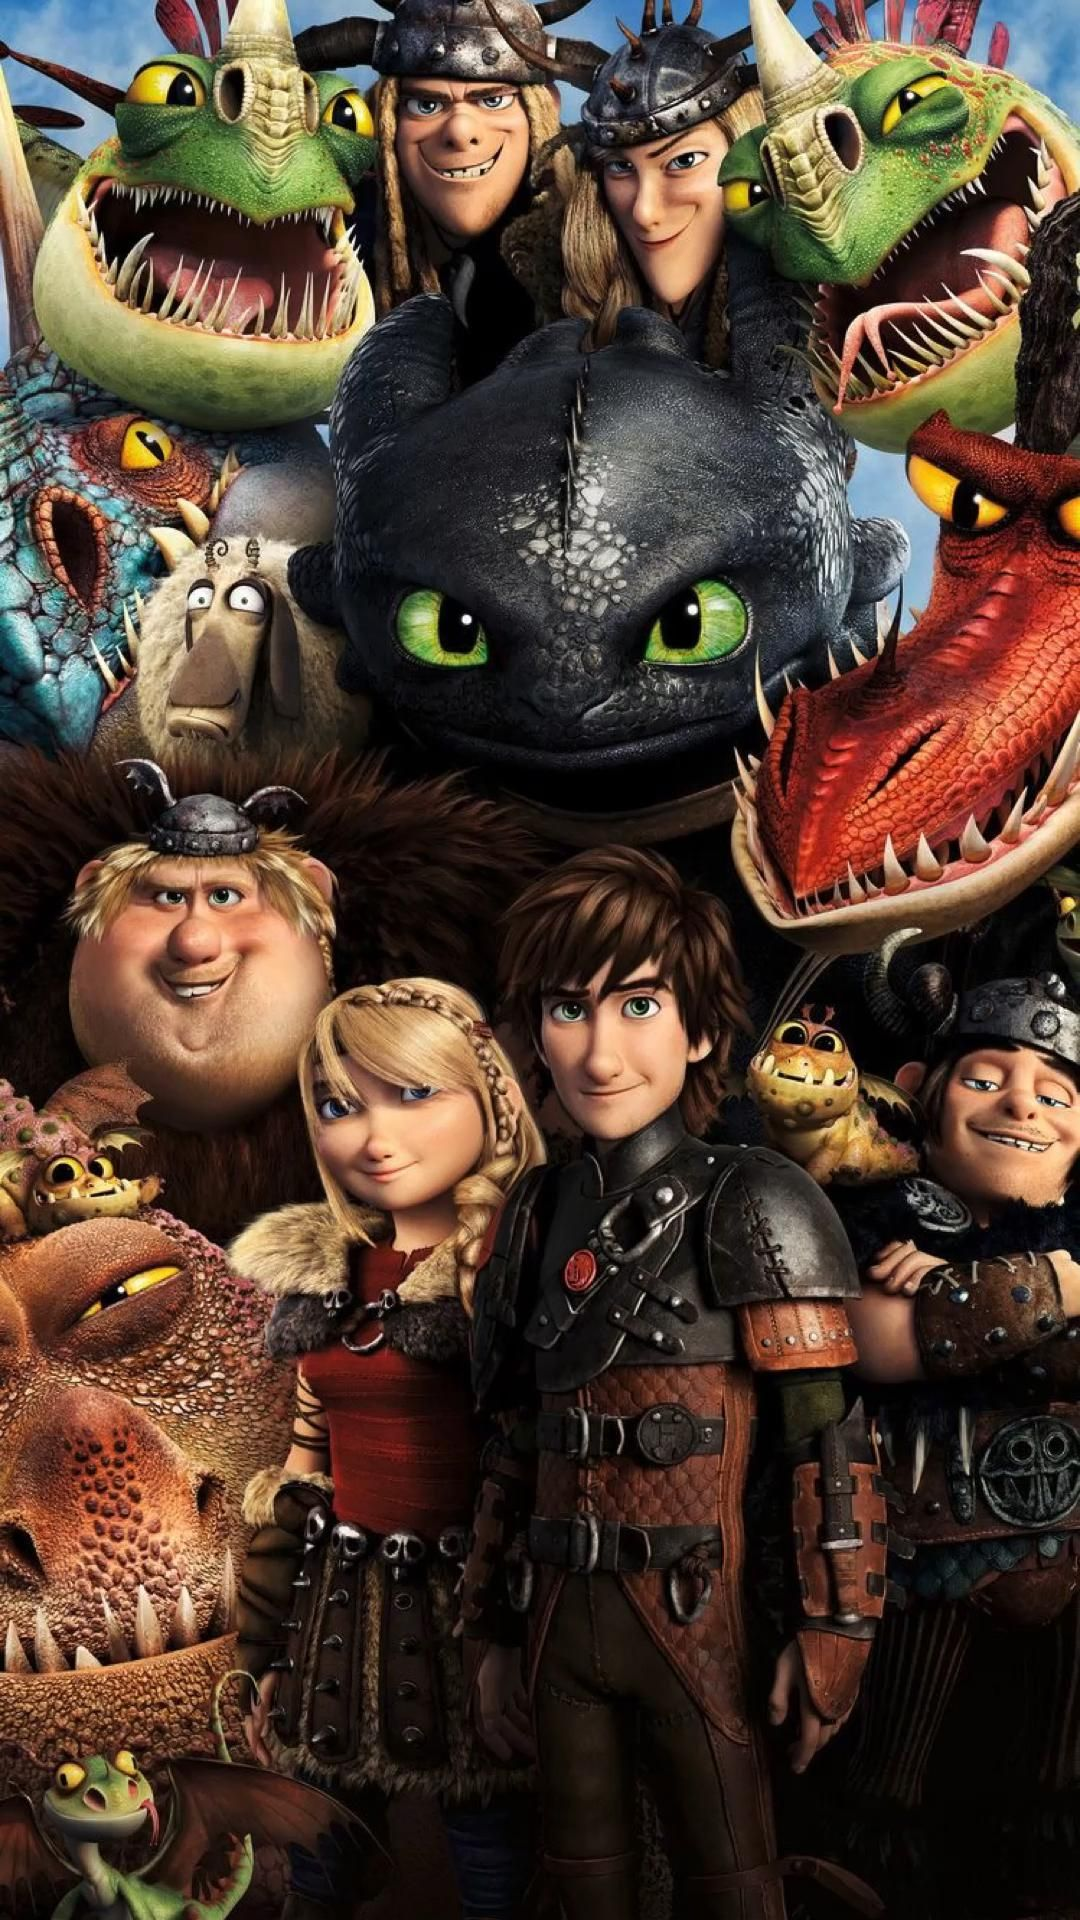 How To Train Your Dragon memories